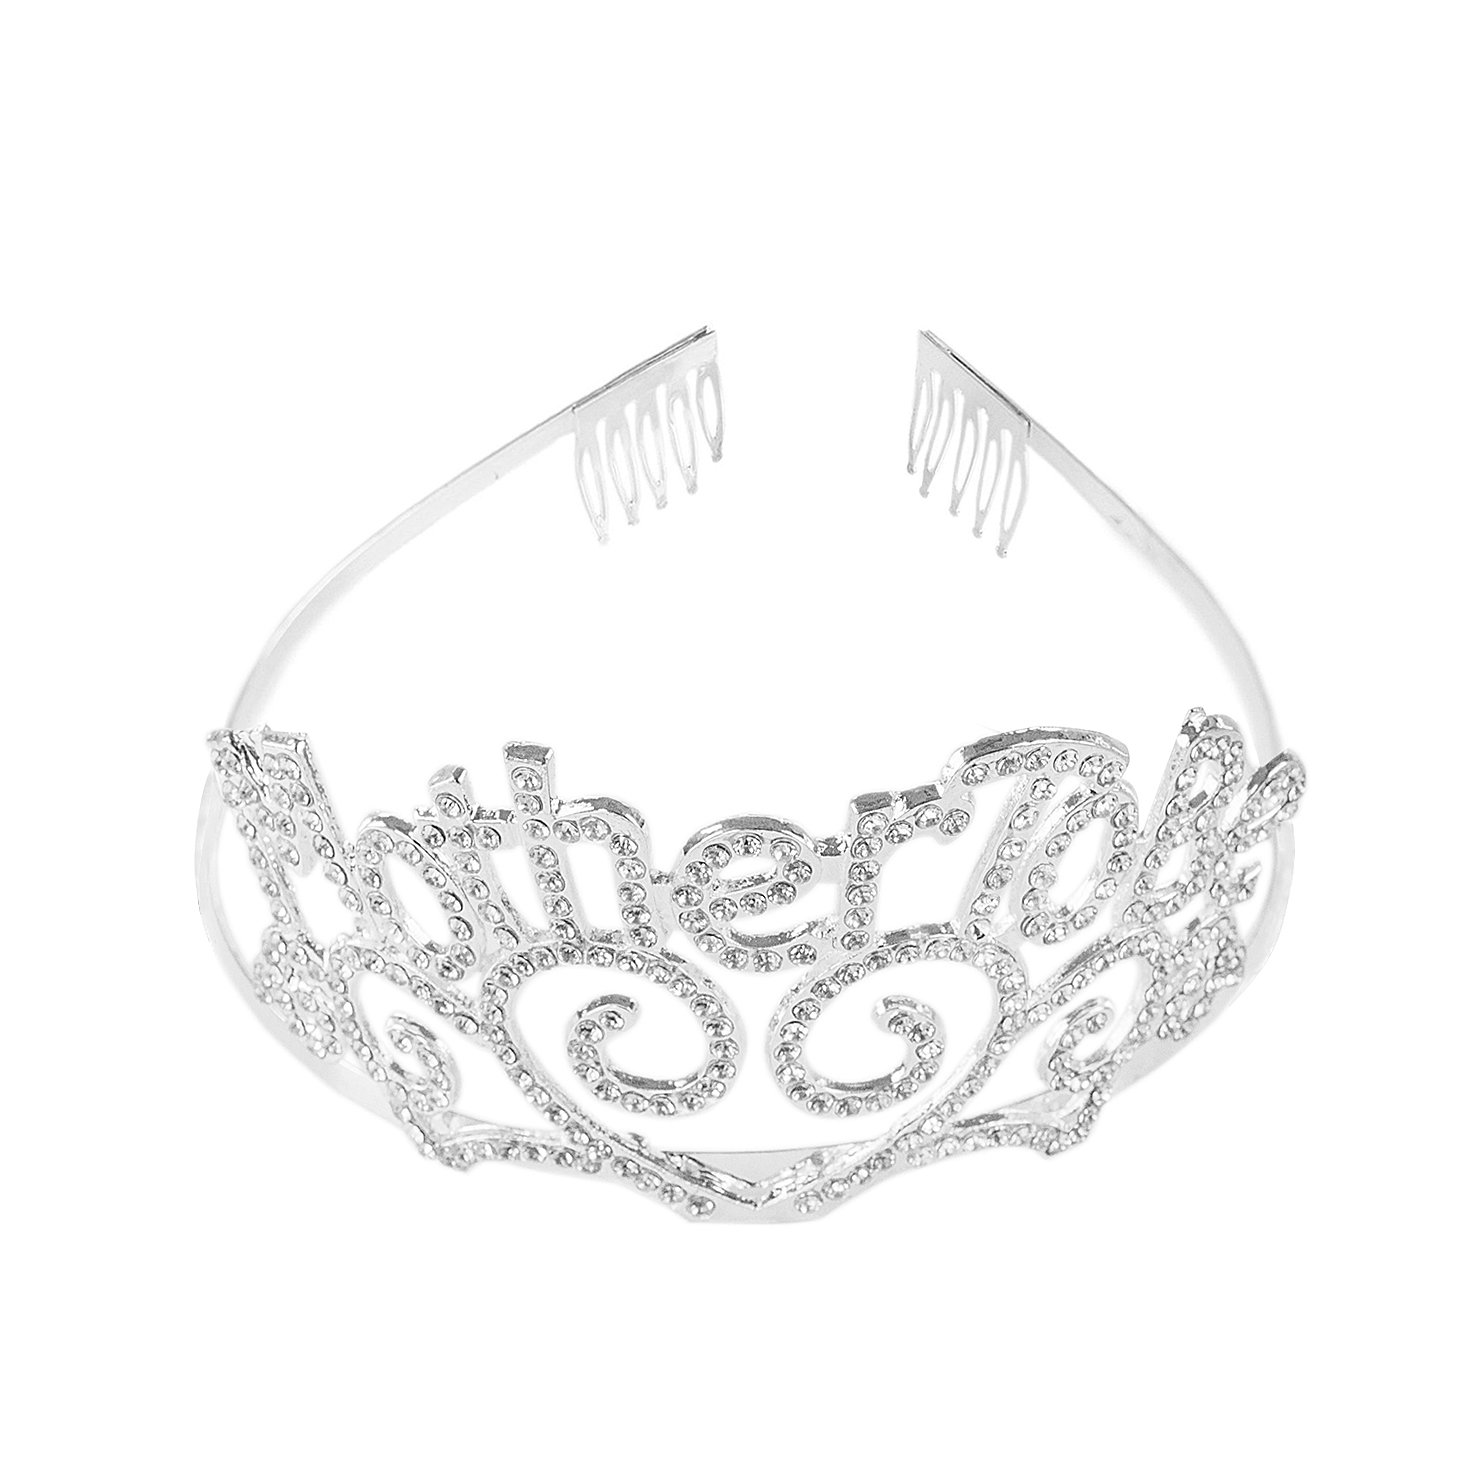 amazon metal mother to be silver tiara hearts crown with Future Motorcycles amazon metal mother to be silver tiara hearts crown with sparkling rhinestones for baby shower future expecting mom accessory and decorations gift